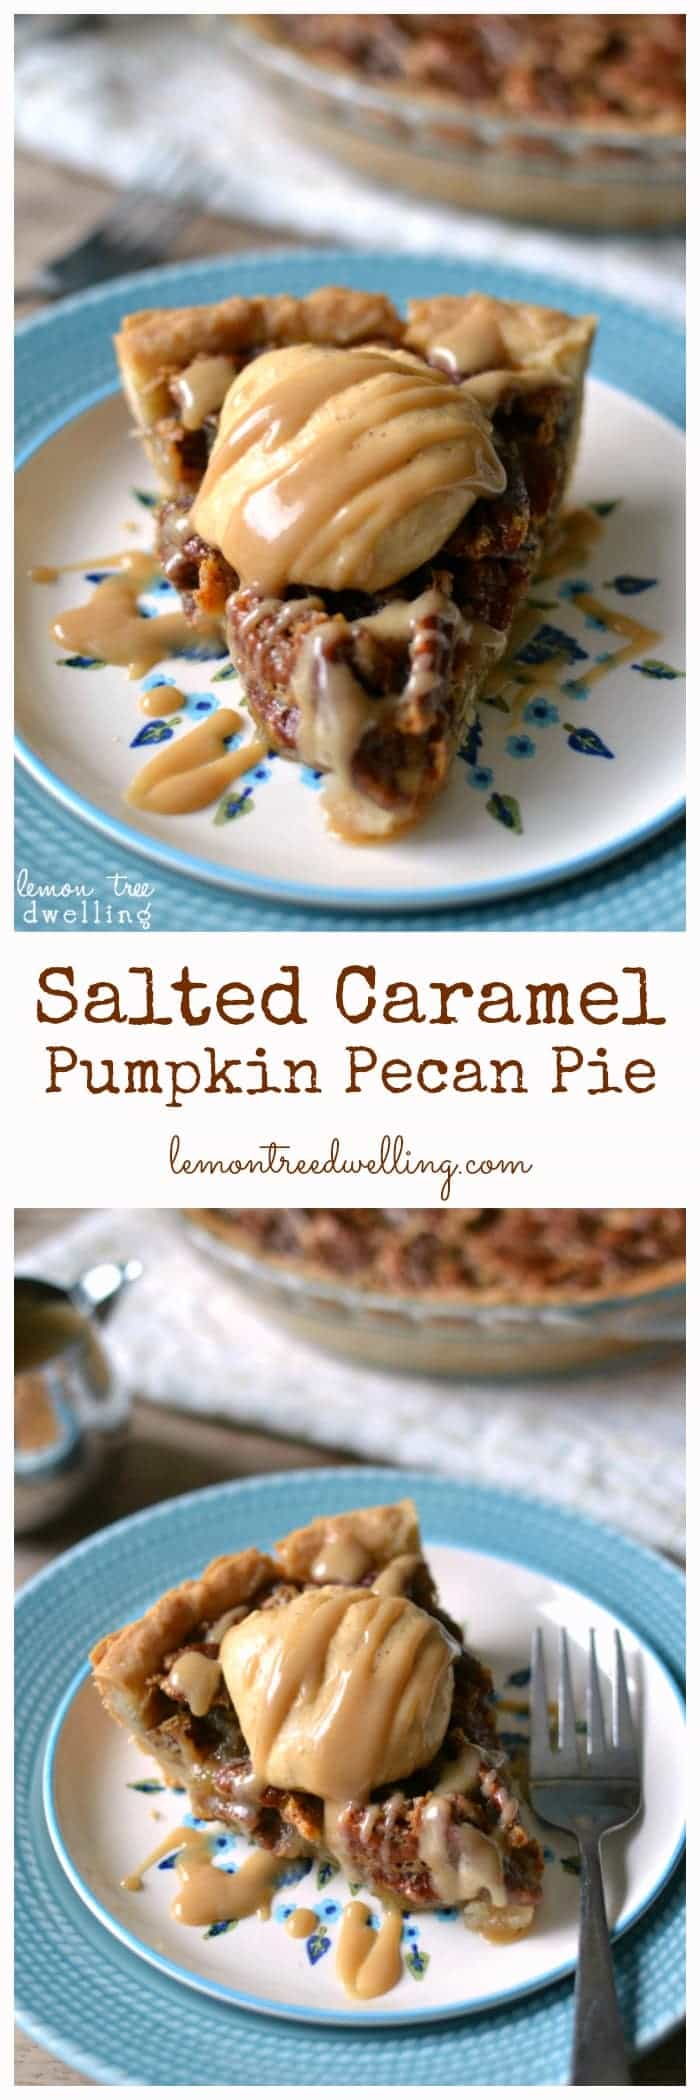 Salted Caramel Pumpkin Pecan Pie. All the best flavors of Thanksgiving, in one delicious pie!